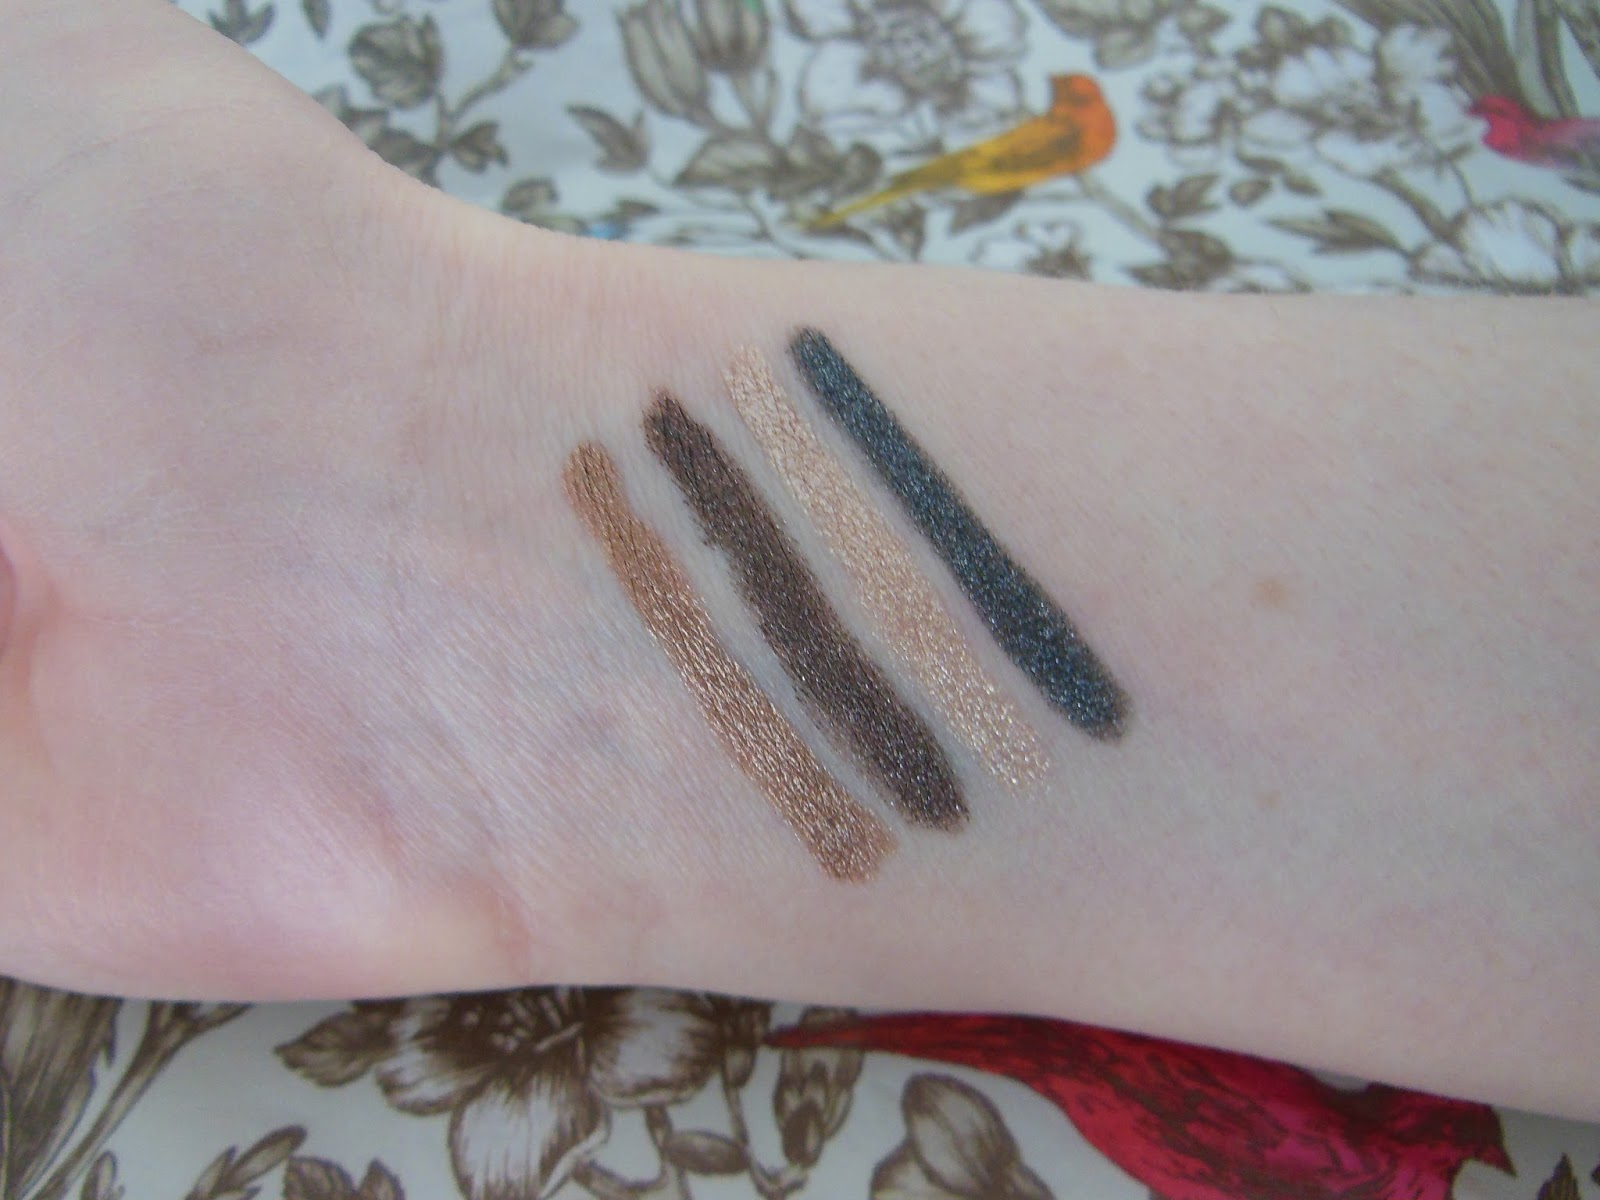 GOSH forever eye shadow stick swatches